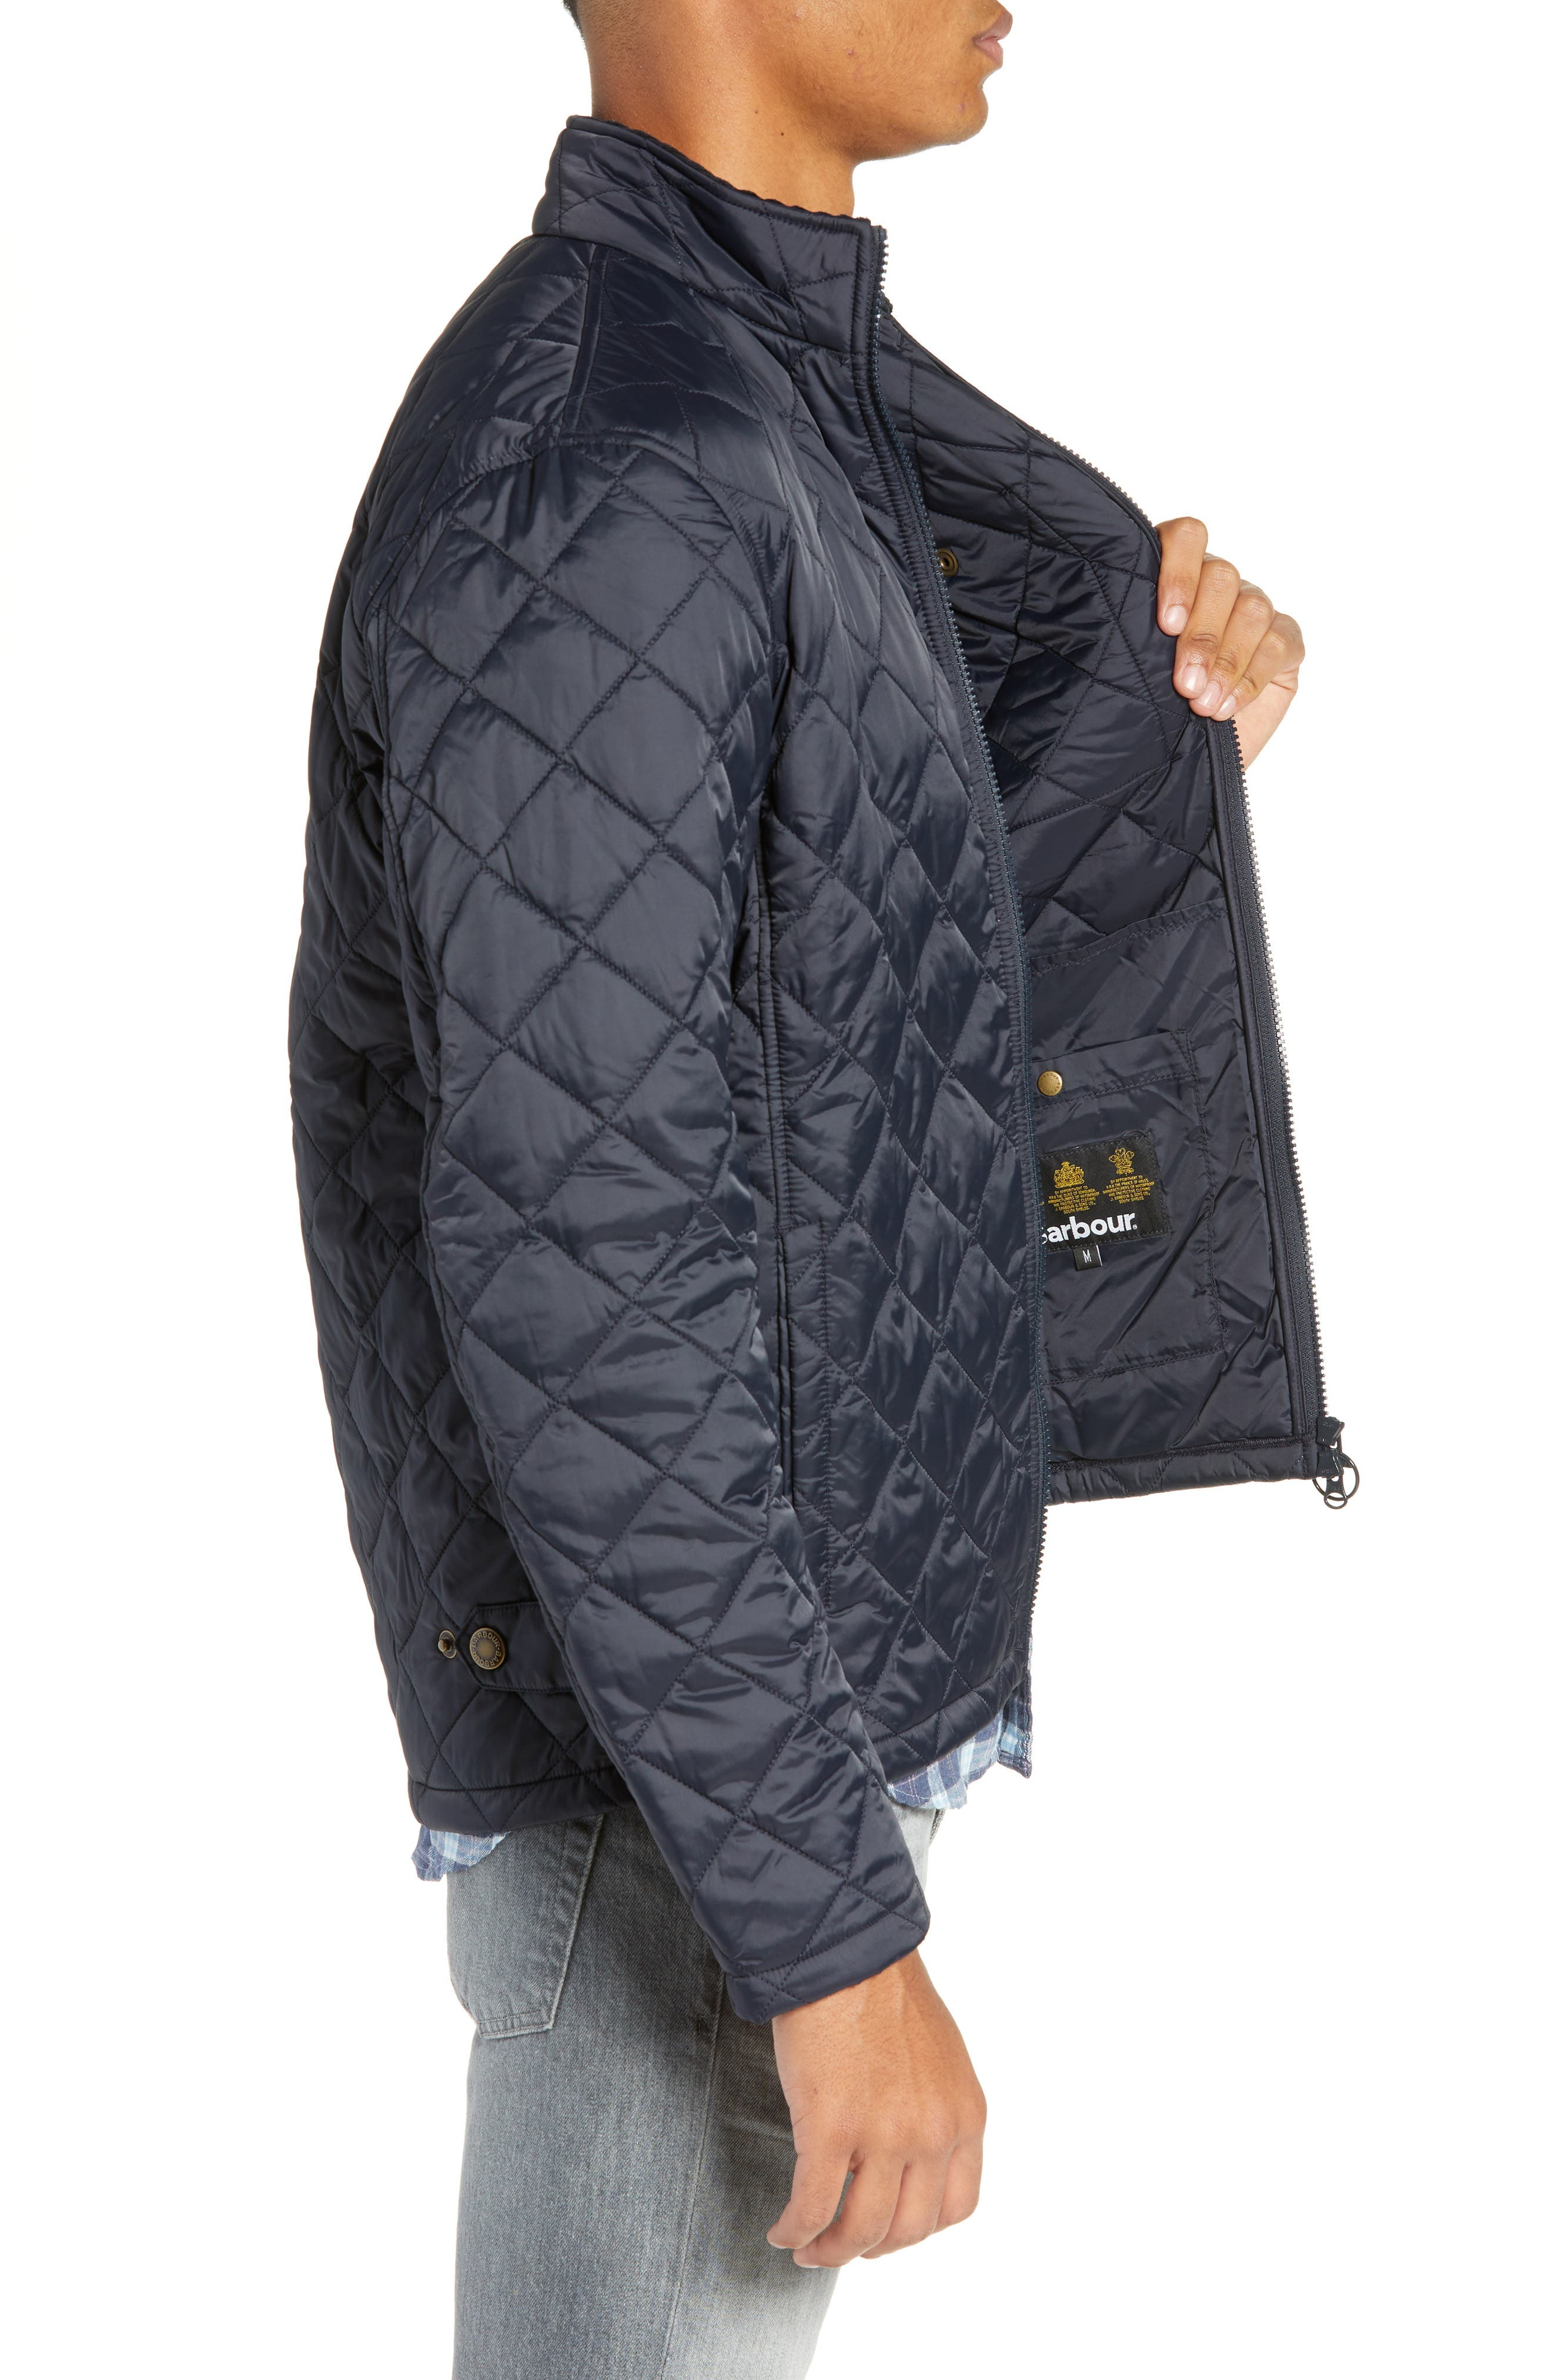 BARBOUR, Barbout Abaft Quilted Jacket, Alternate thumbnail 4, color, NAVY